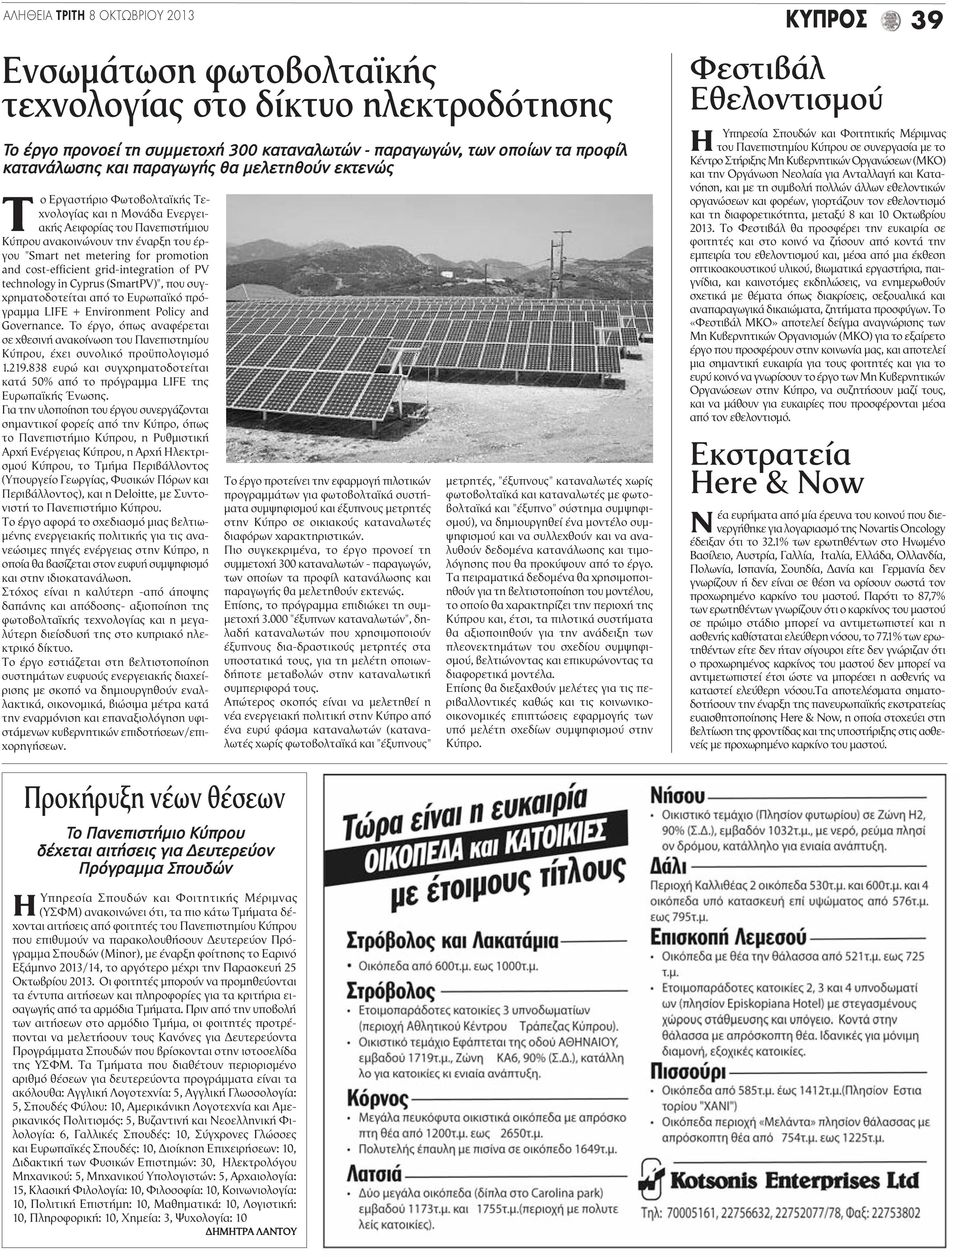 "cost-efficient grid-integration of PV technology in Cyprus (SmartPV)"", που συγχρηματοδοτείται από το Ευρωπαϊκό πρόγραμμα LIFE + Environment Policy and Governance."